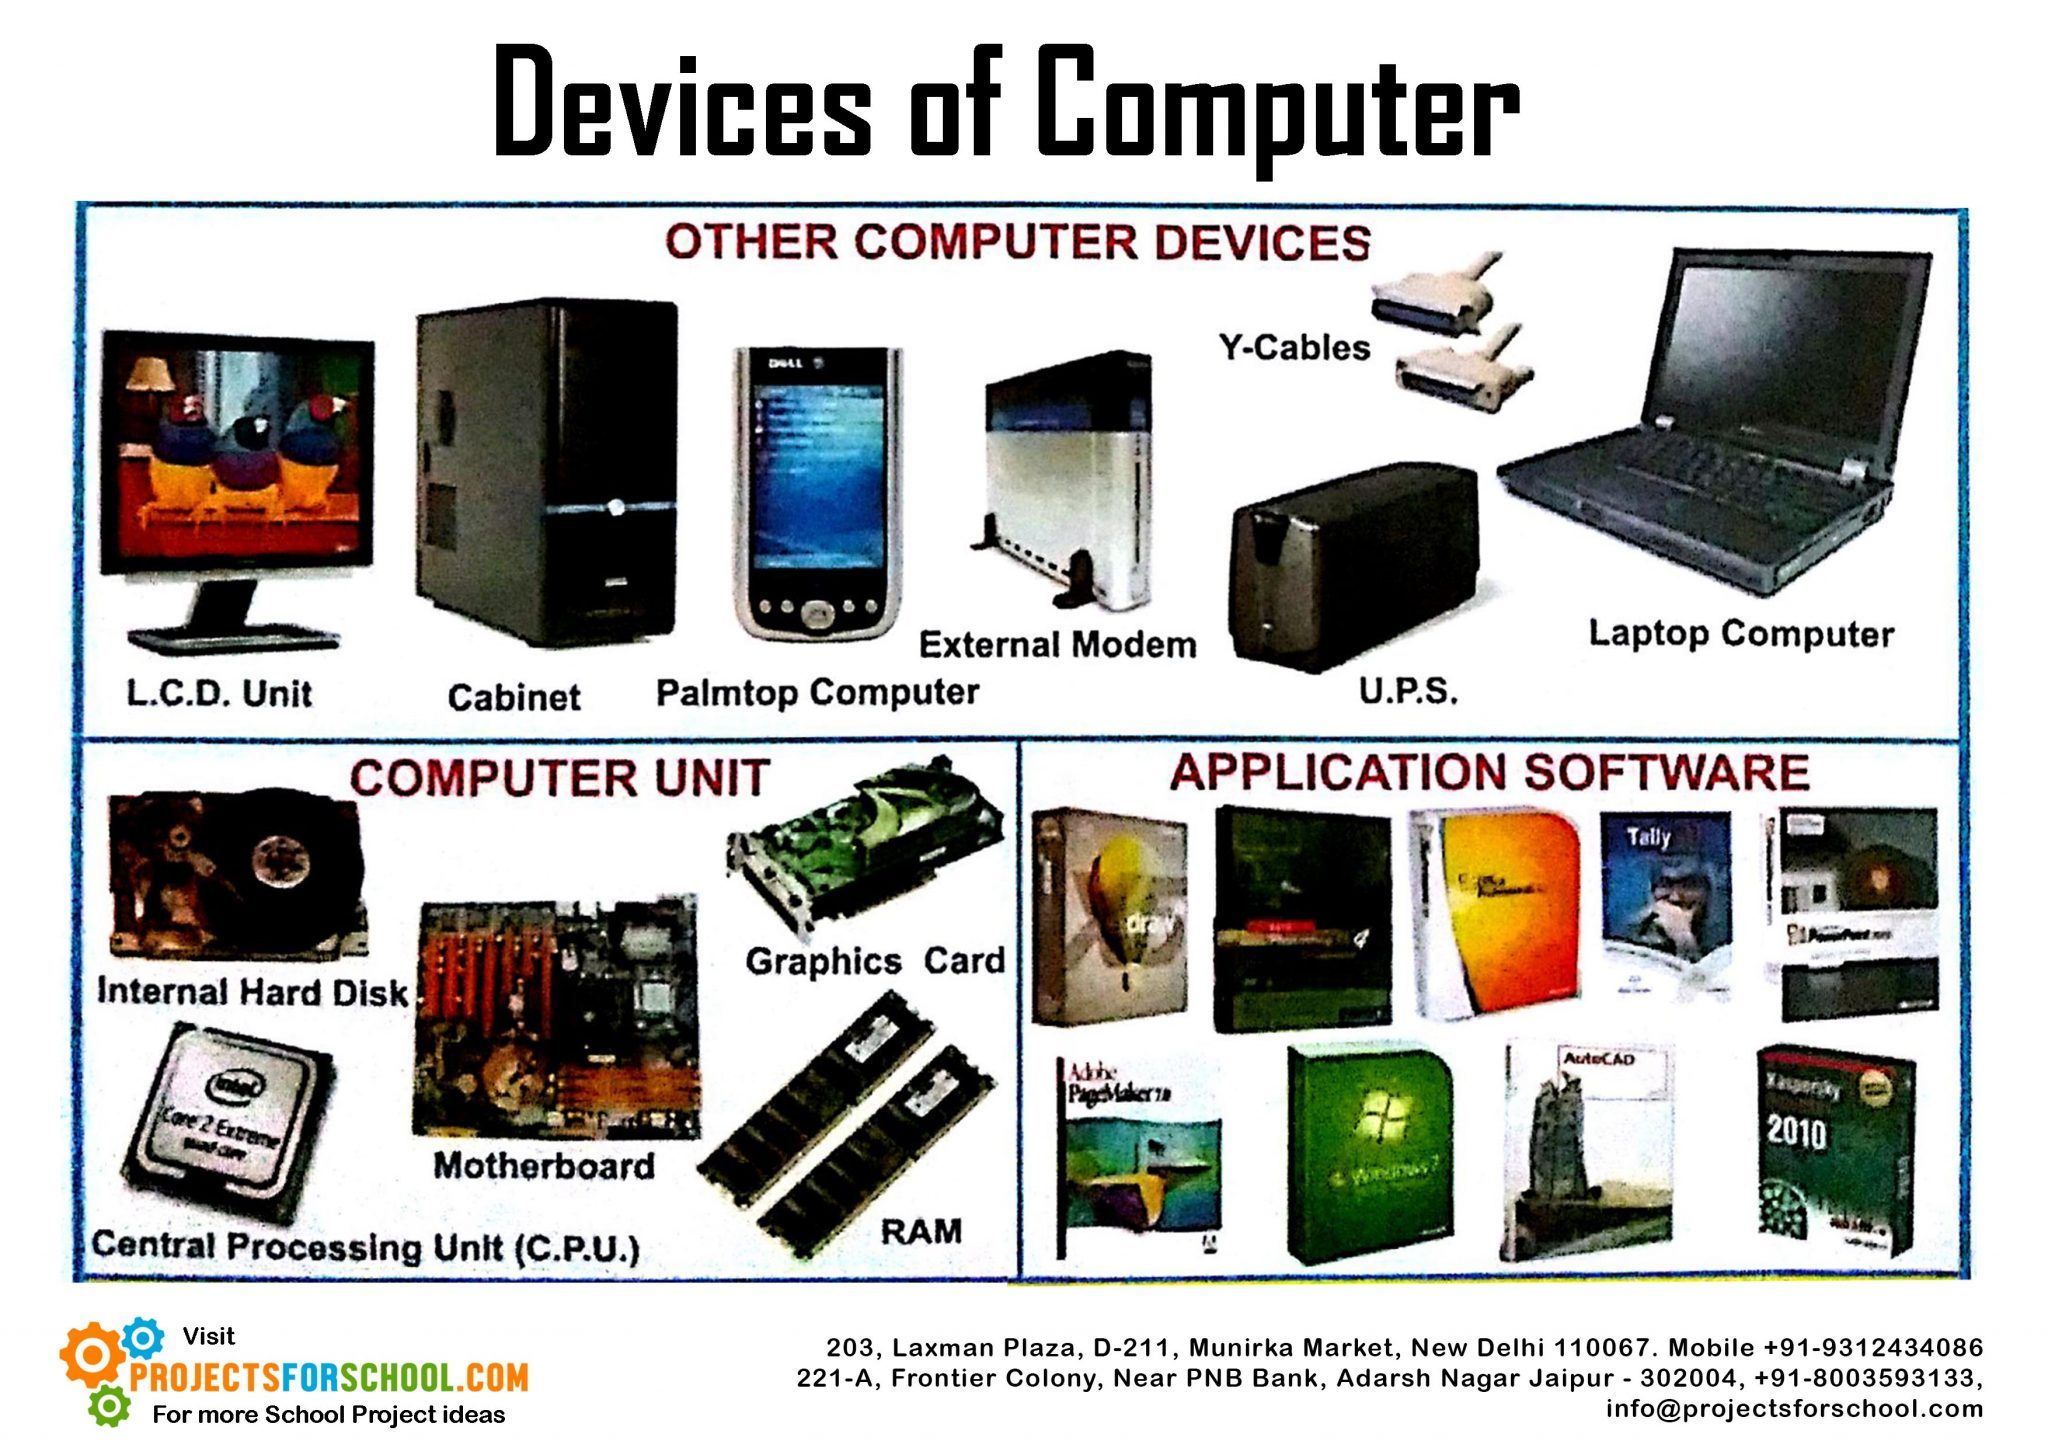 All Computer Device Hear Various Projects For School